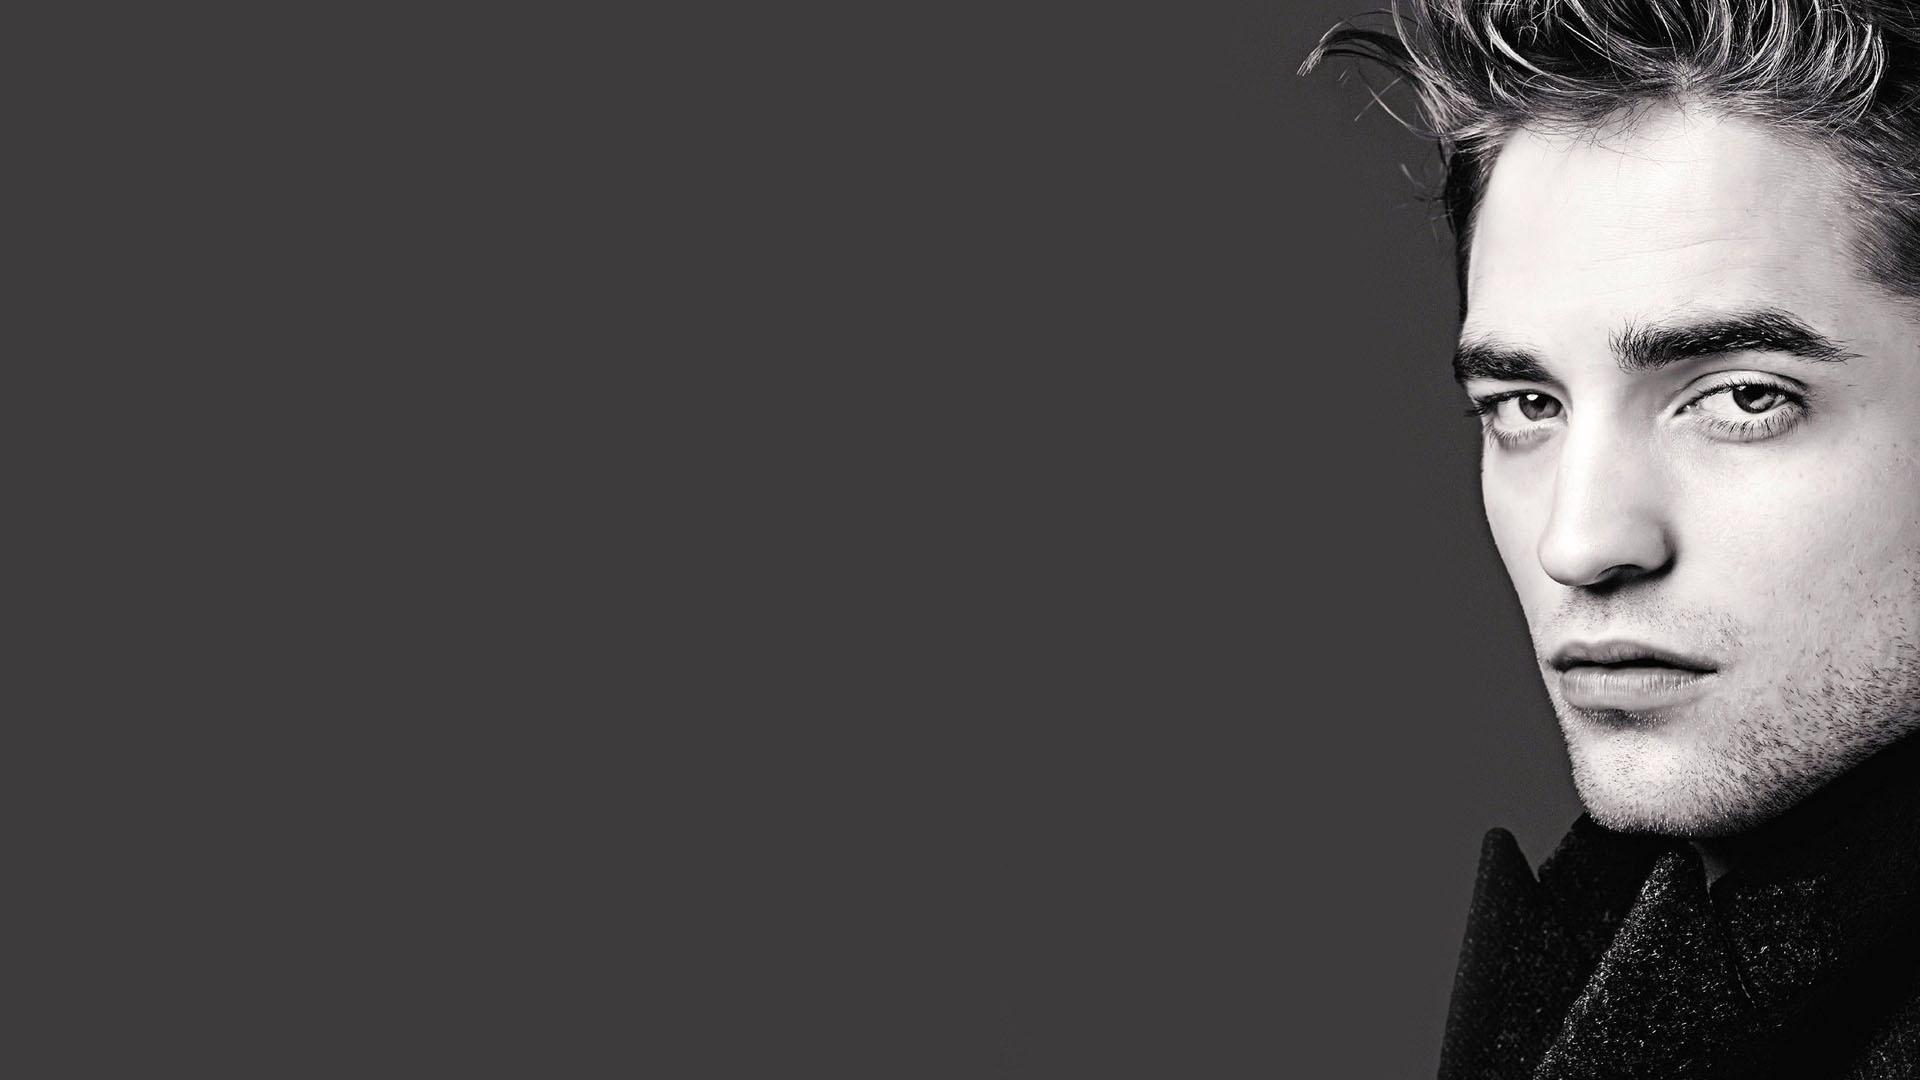 Download wallpaper 1920x1080 robert pattinson, guy, face, pensive ...